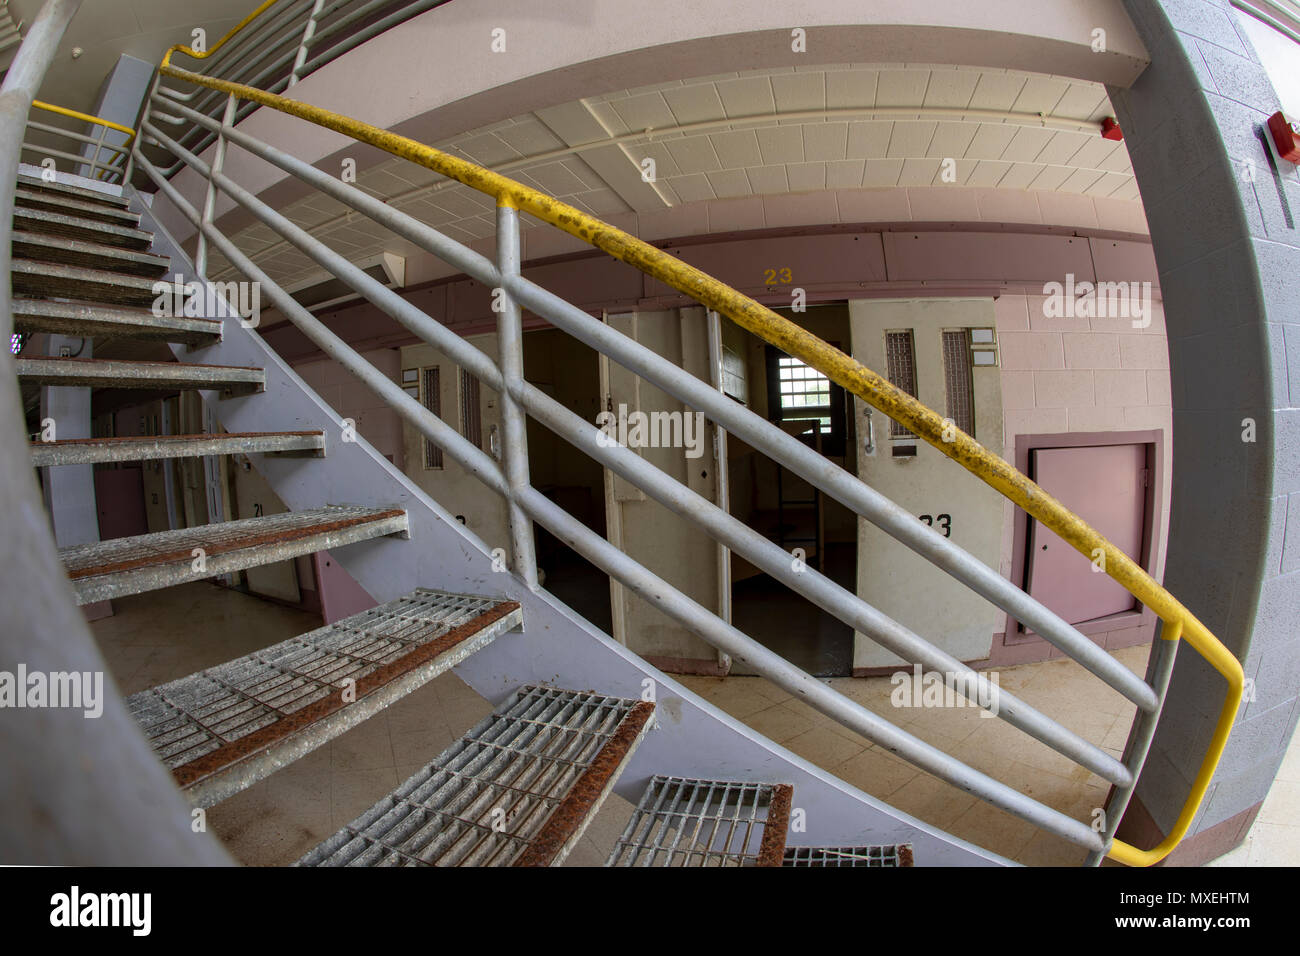 Metal stairs outside open cell doors in cellblock of old prison. - Stock Image